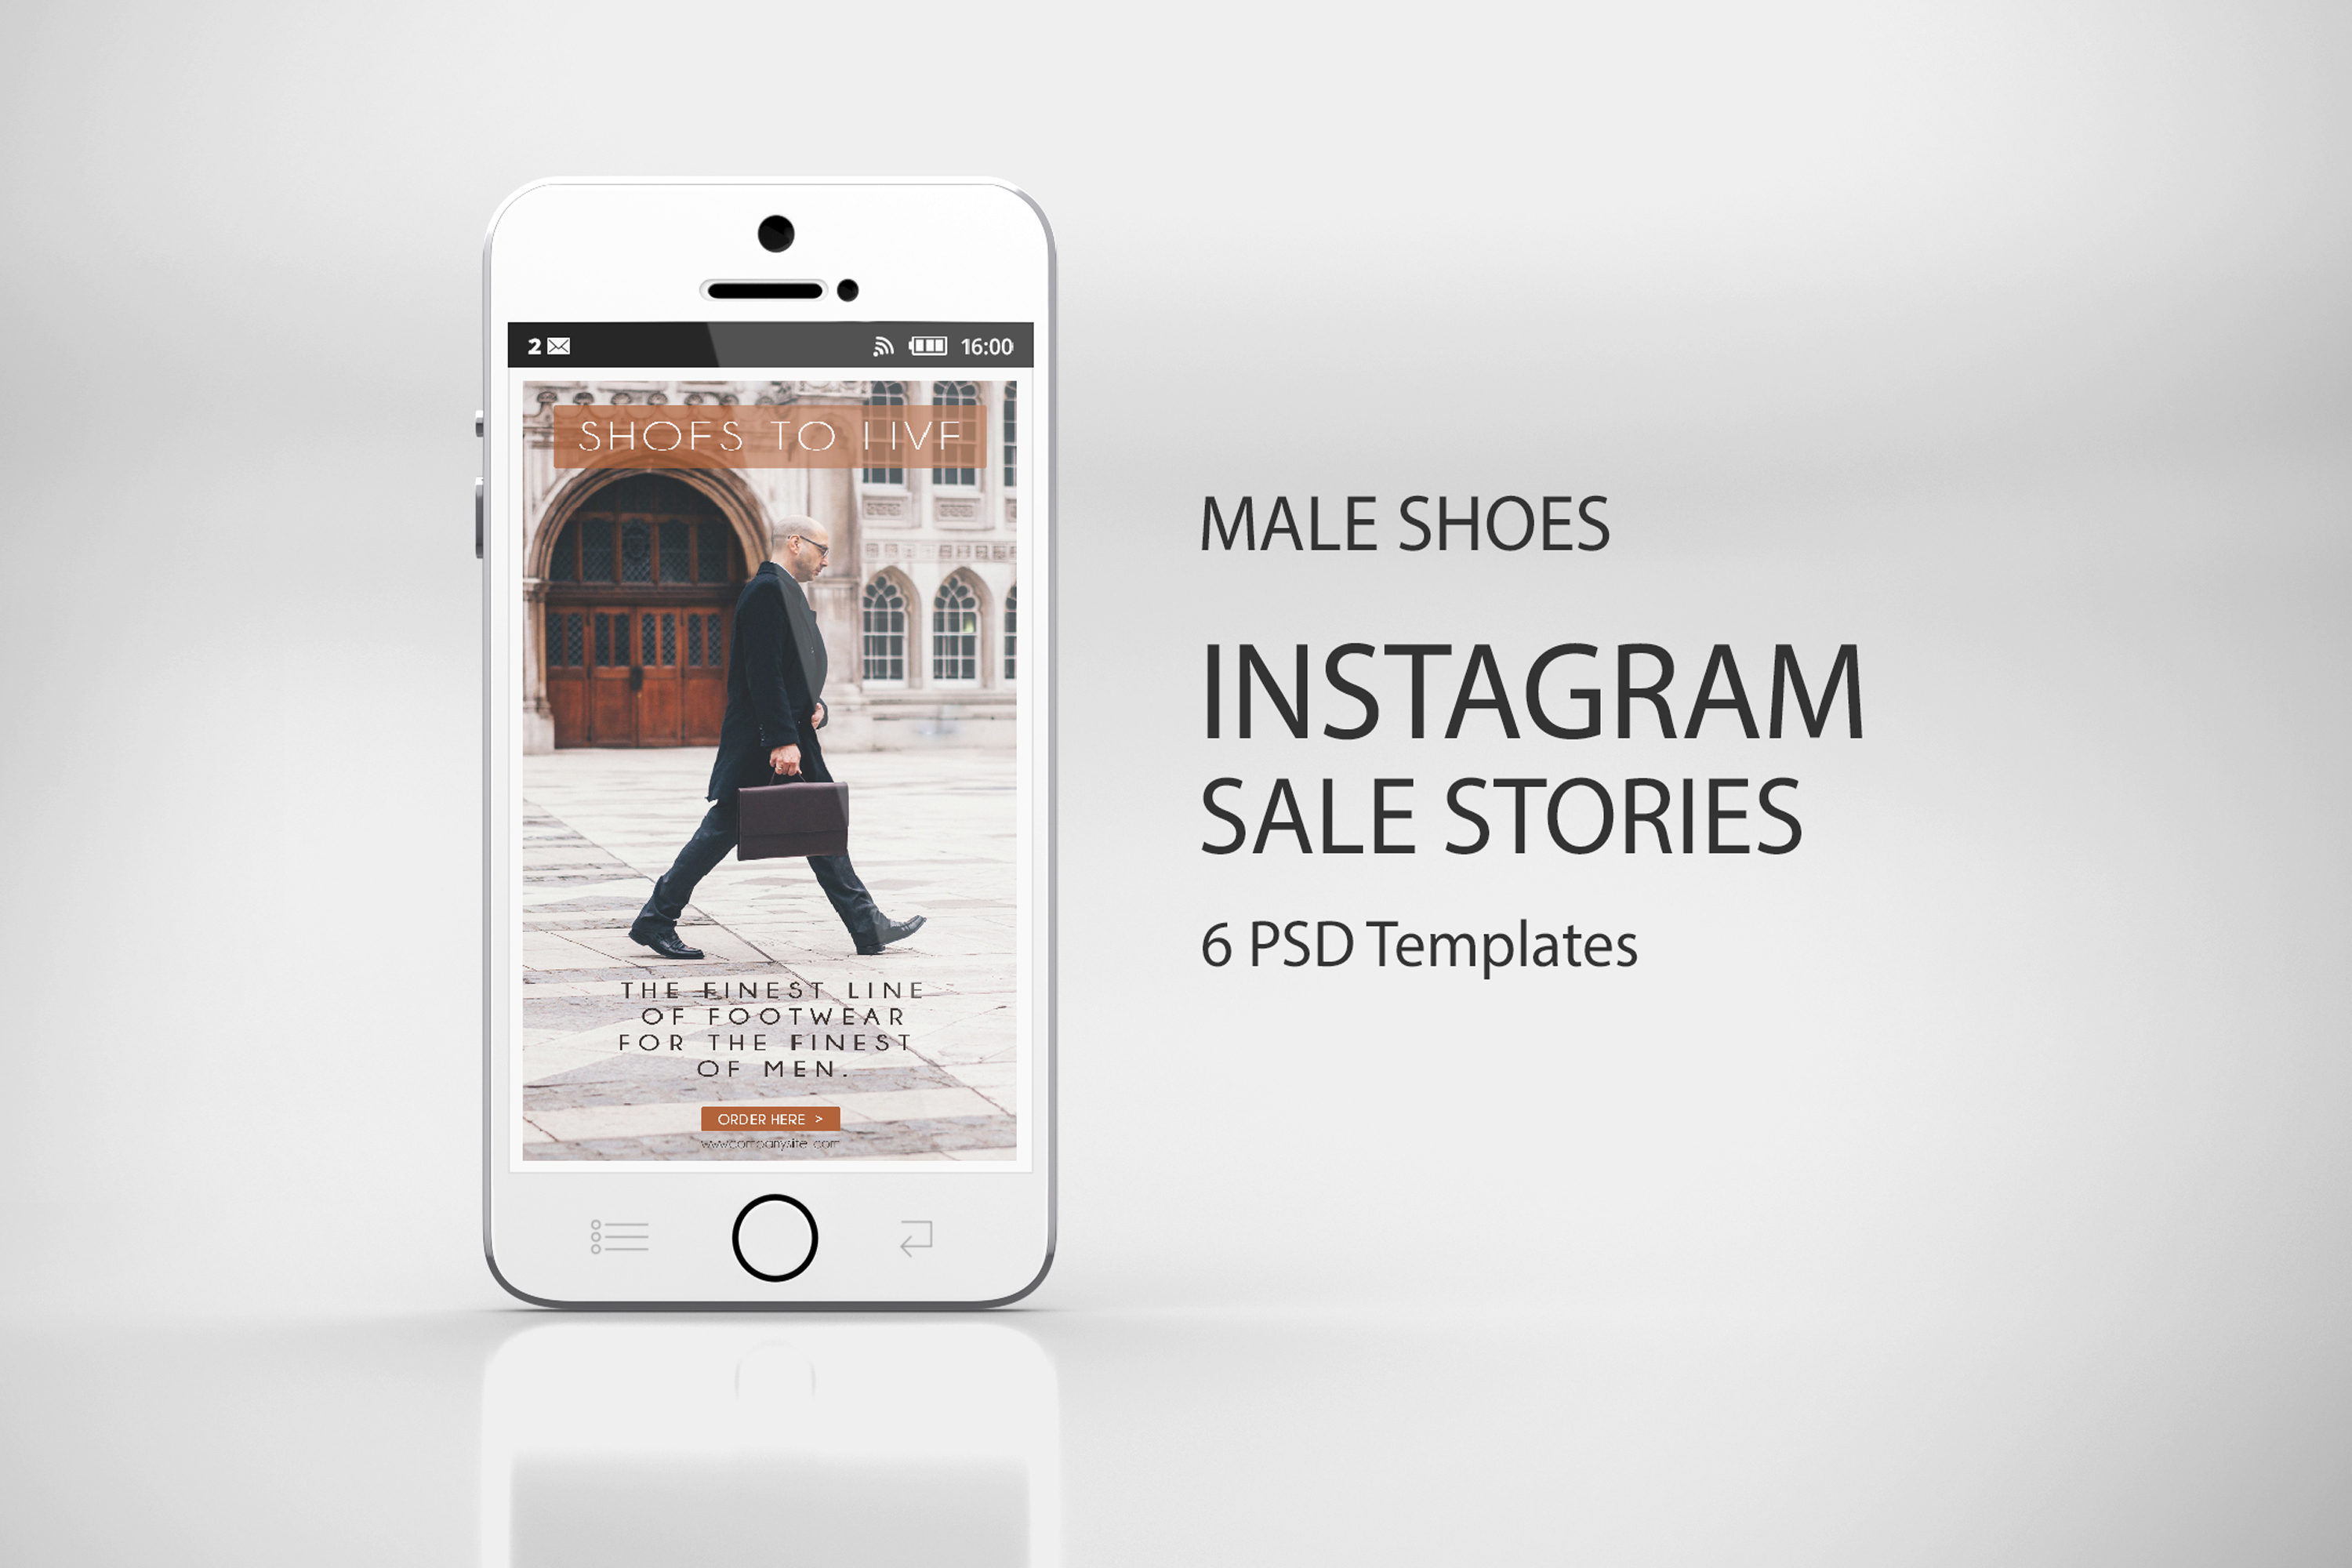 Male Shoes Sale Insta-Story - 6 Templates PSD example image 7